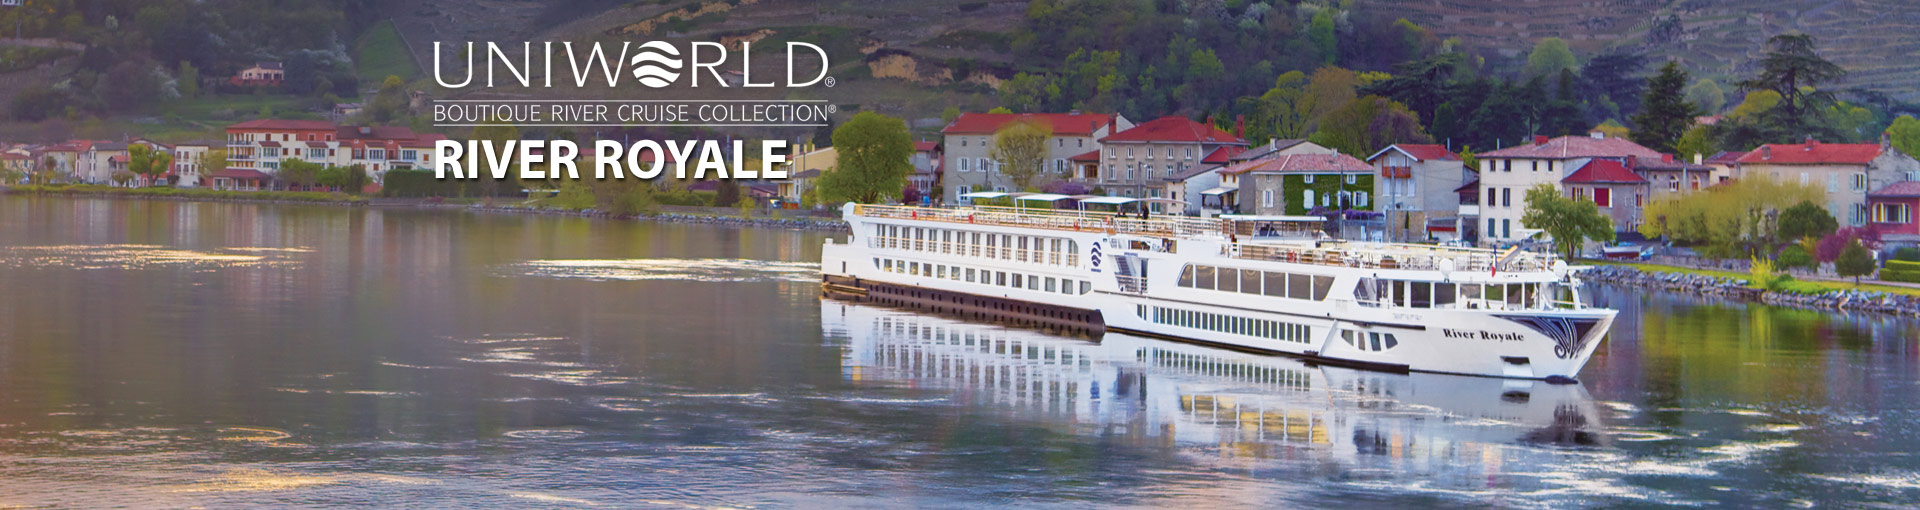 Uniworld River Cruises River Royale river ship